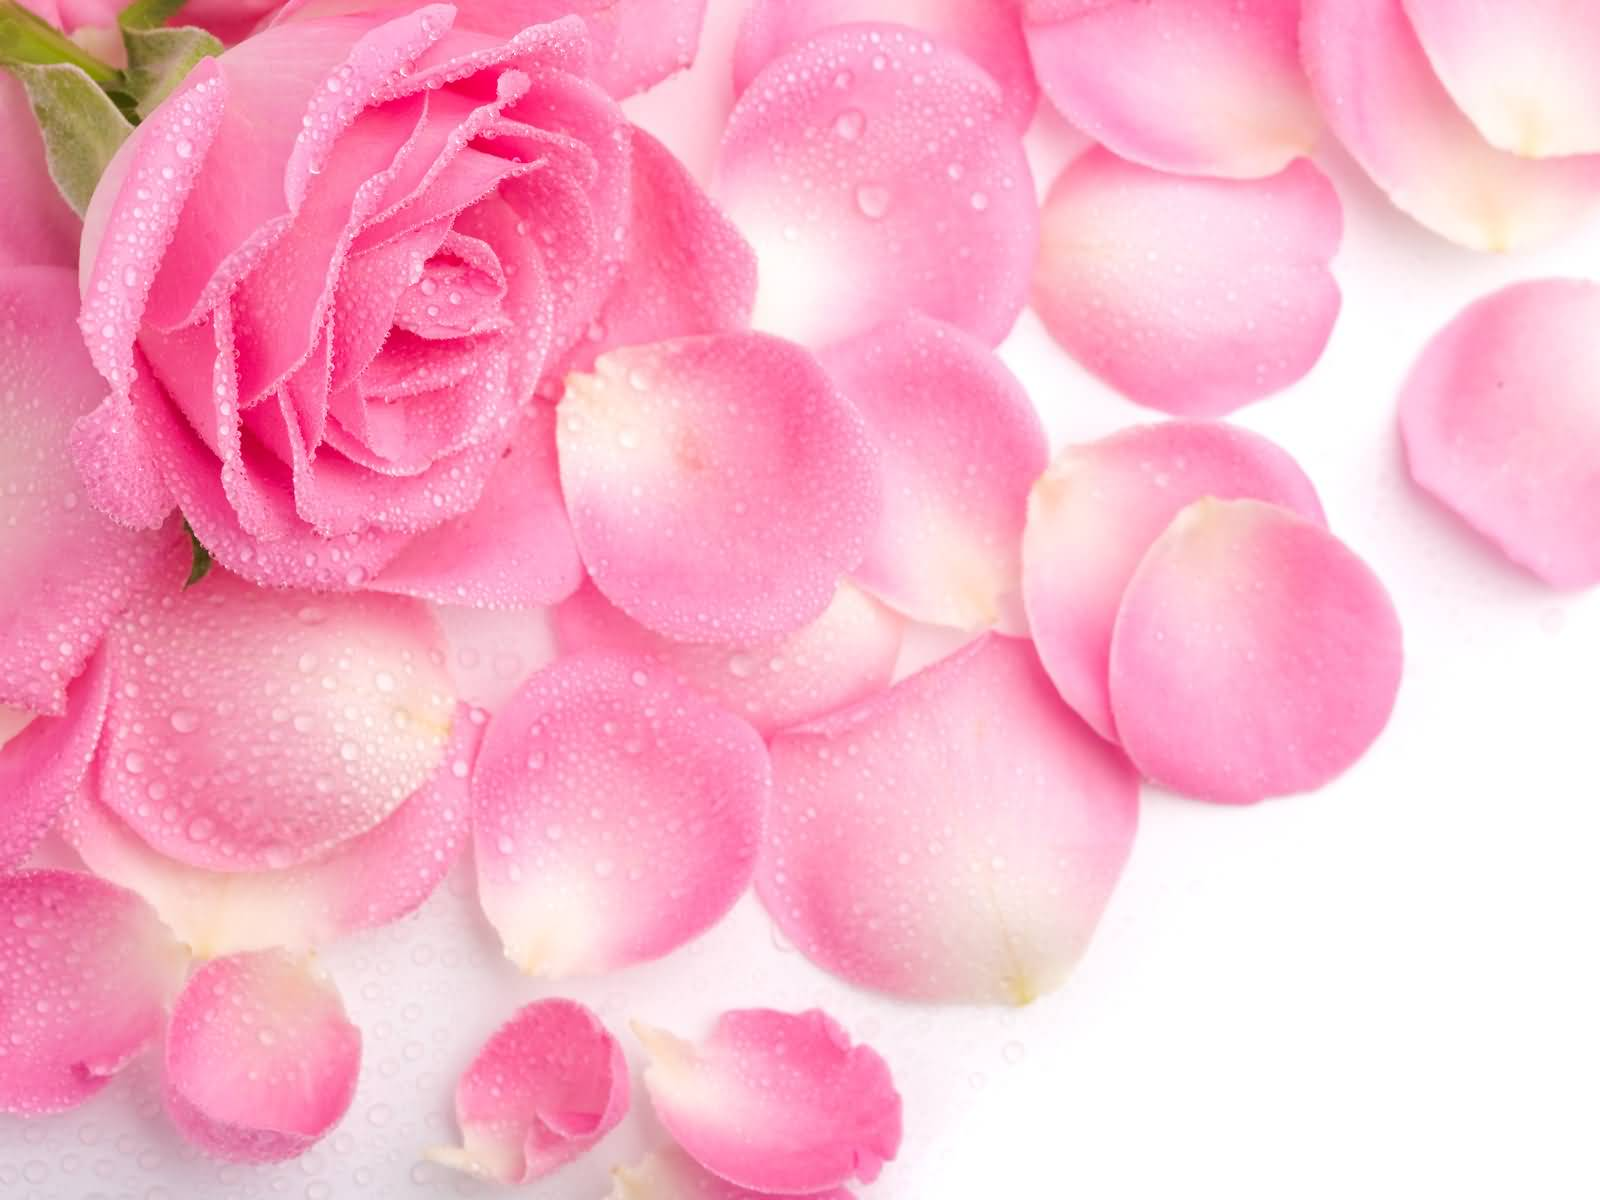 Pink rose pictures images graphics comments scraps 46 pictures fantastic pink rose wallpaper mightylinksfo